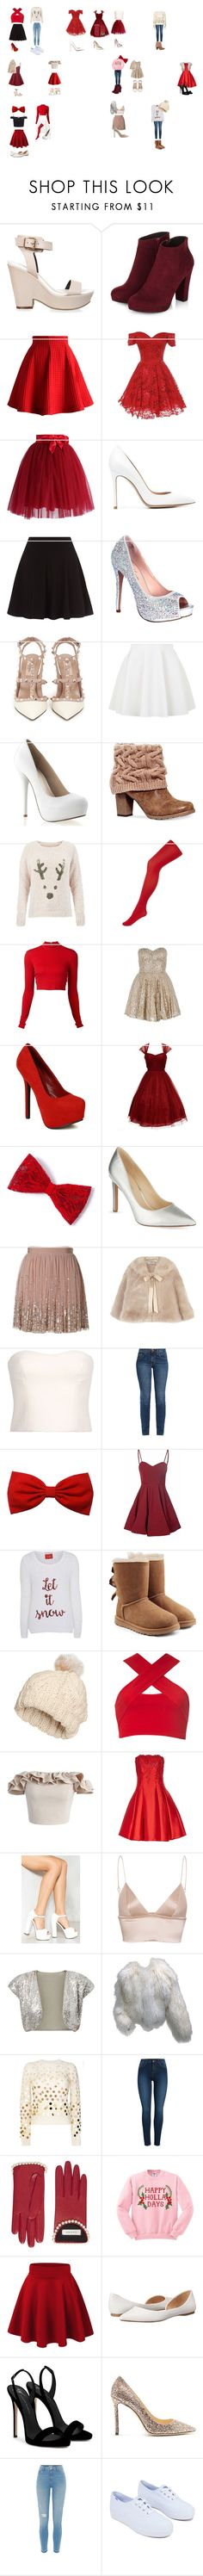 """""""Christmas outfits"""" by airianagb on Polyvore featuring Miss Selfridge, Chicwish, Gianvito Rossi, Lauren Lorraine, Valentino, Topshop, Muk Luks, Accessorize, Alice + Olivia and Unique Vintage"""